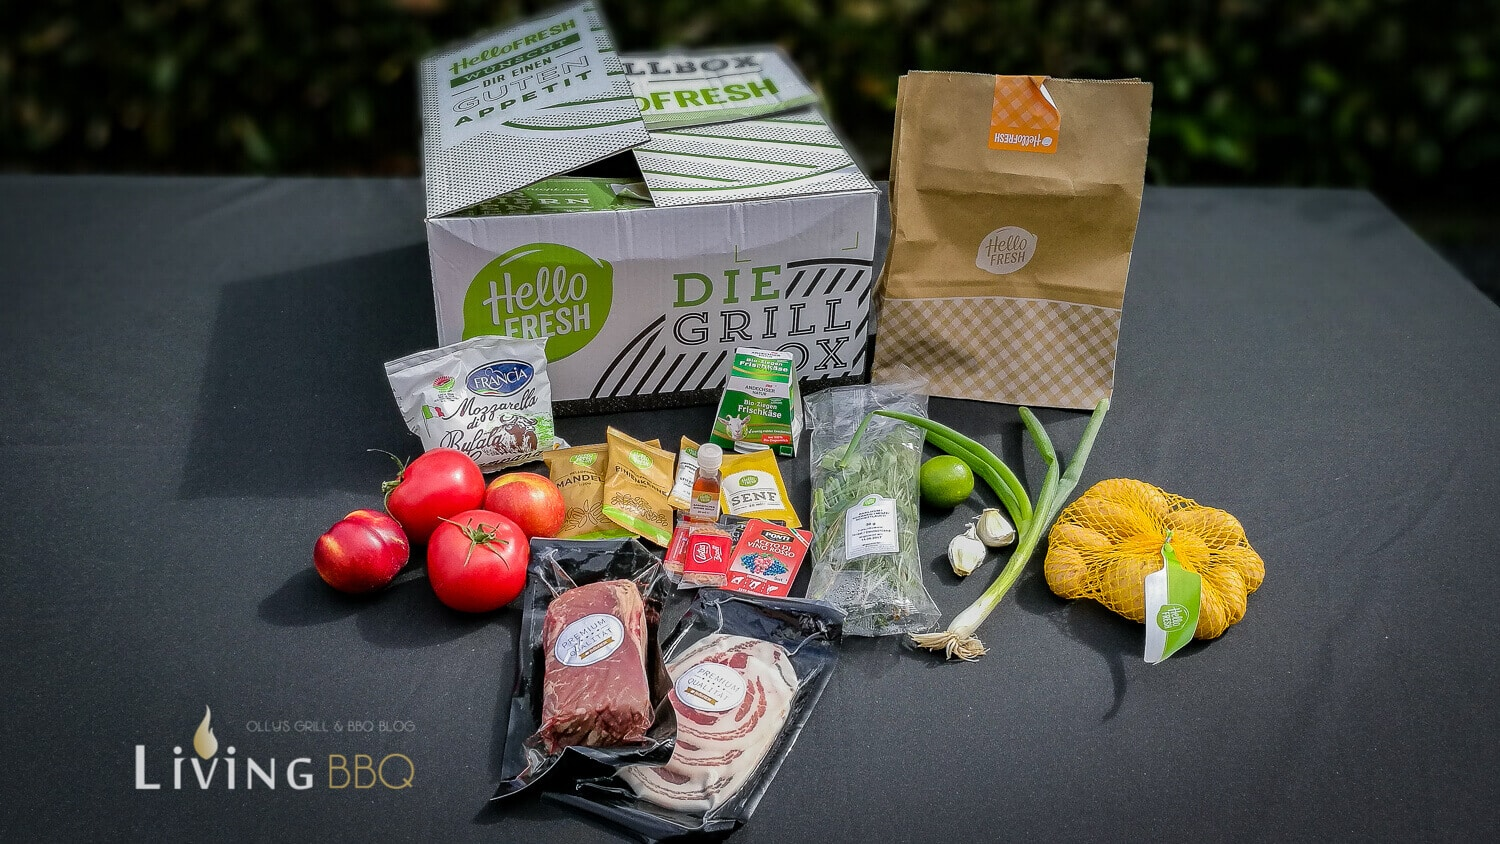 Hello Fresh Grillbox